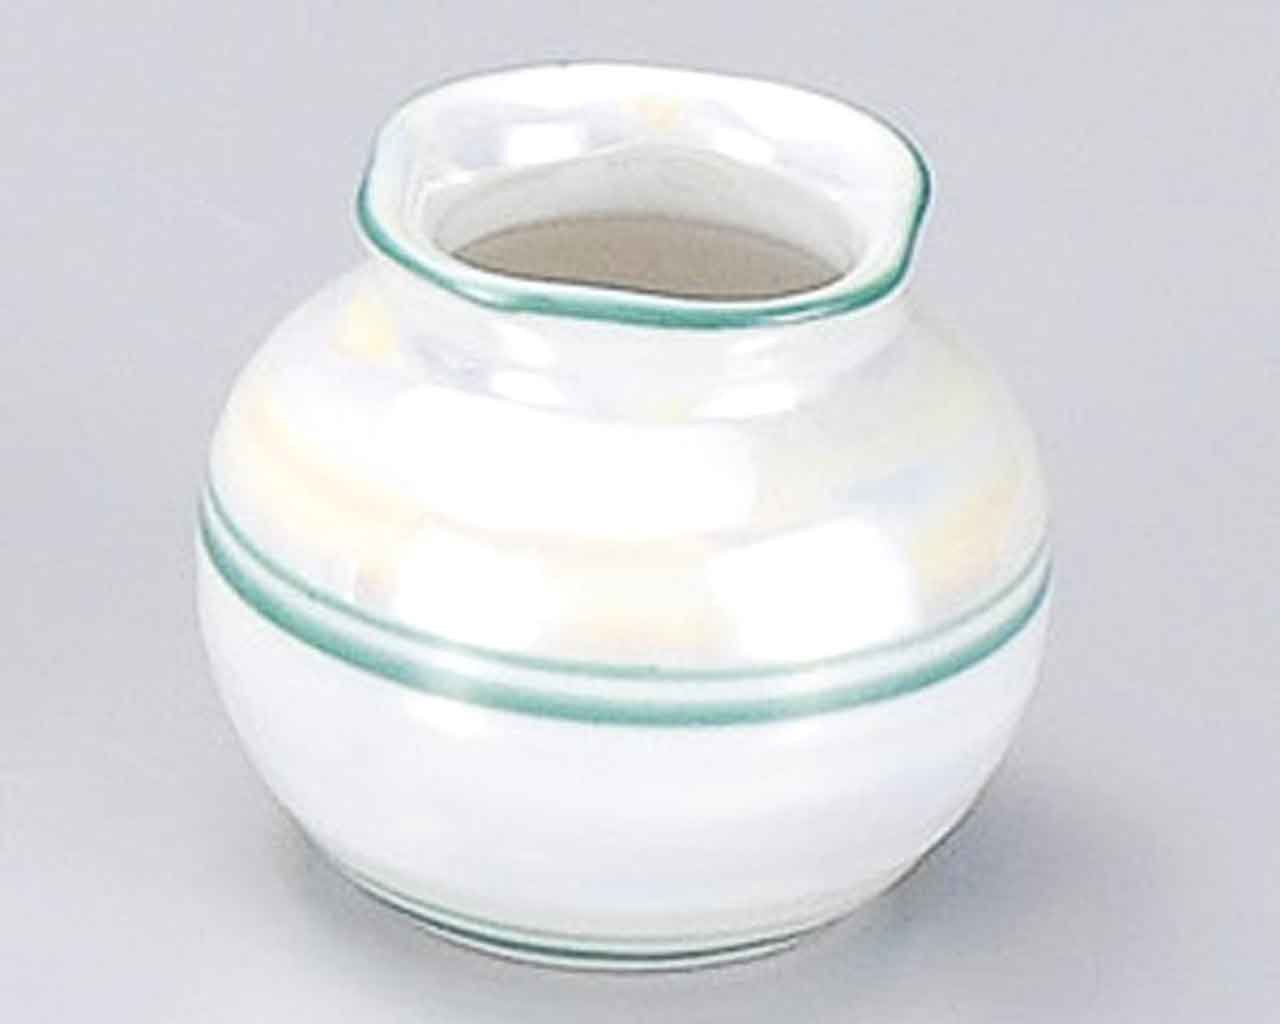 Laster Glaze 2inch Set of 5 Toothpick holders White porcelain Made in Japan